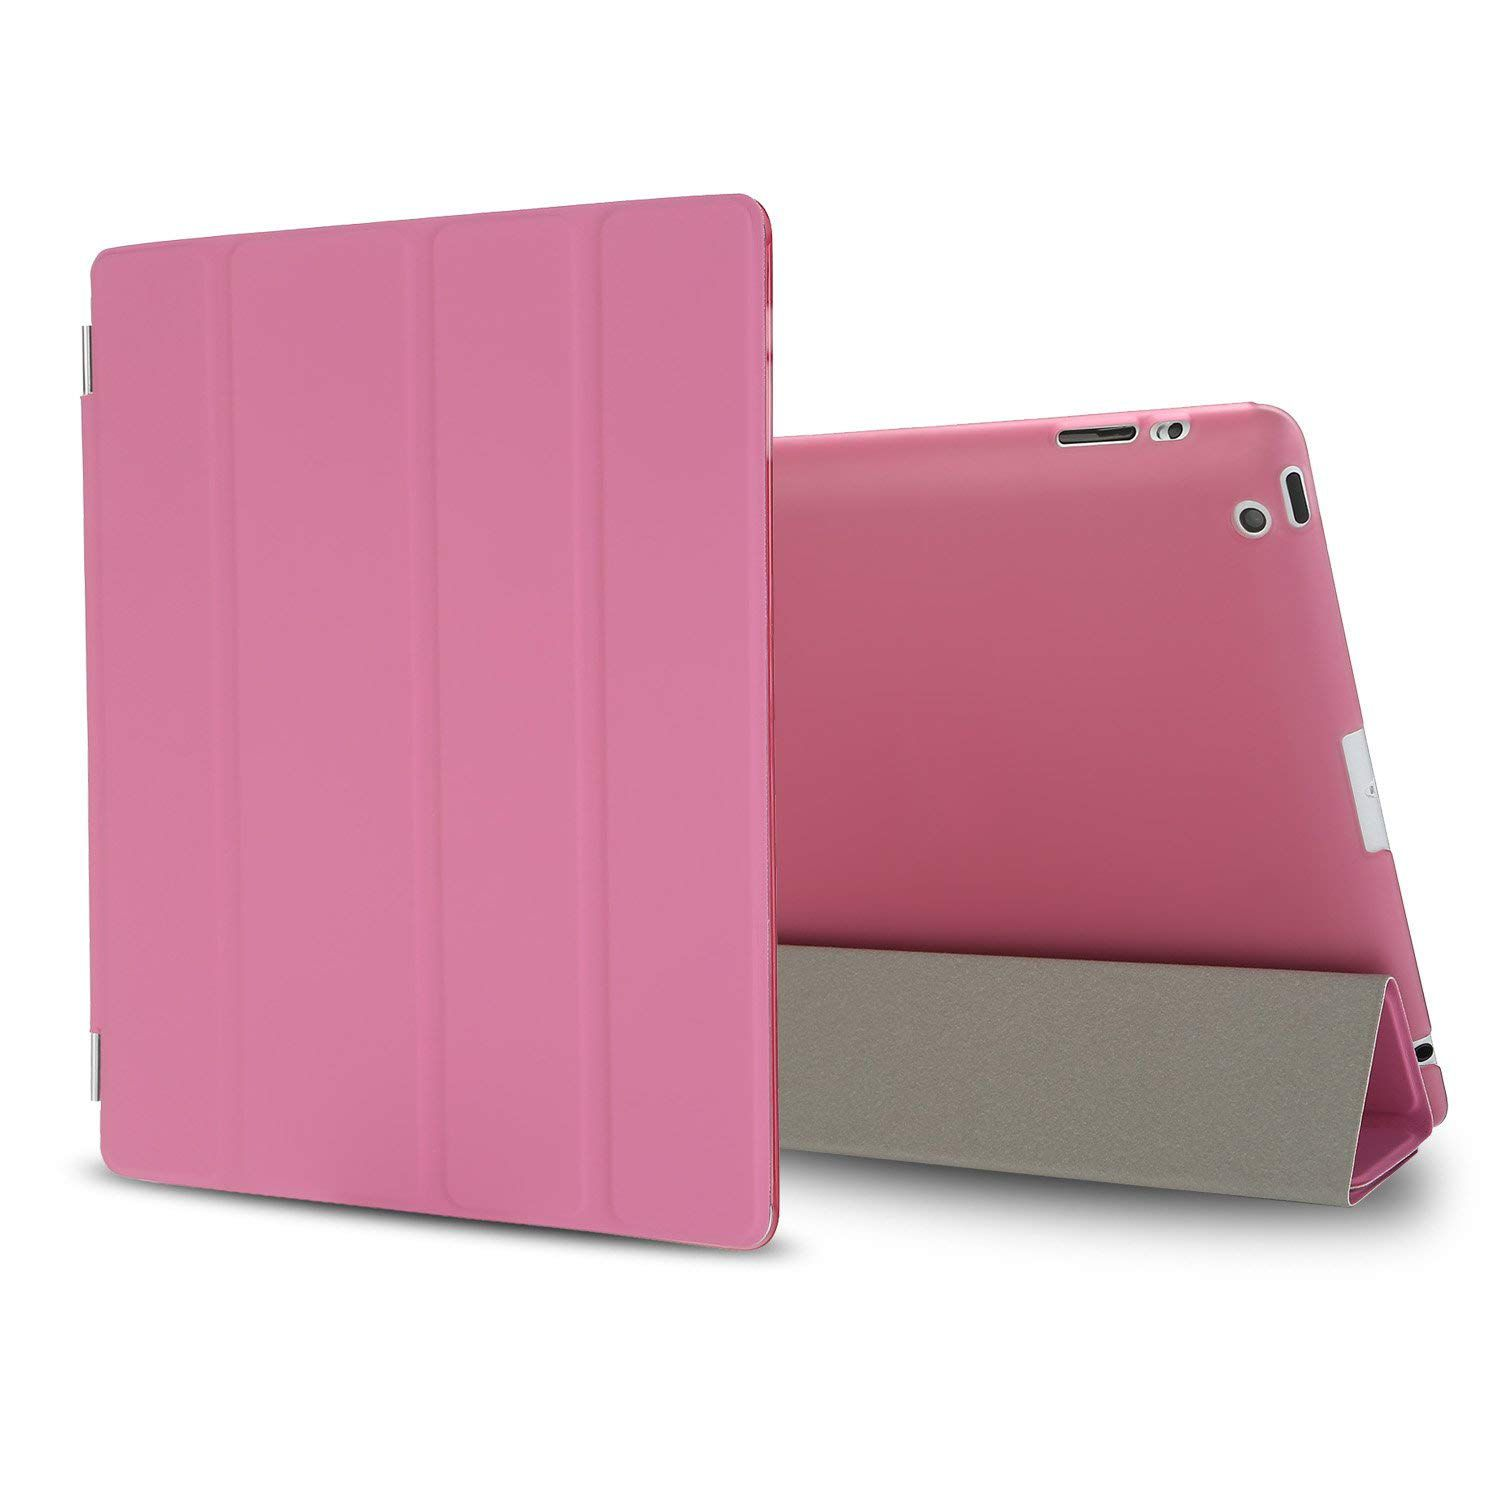 Capa Smart Case Ipad 2 3 4 Sensor Sleep Frontal + Traseira (Modelos 2011/2012)